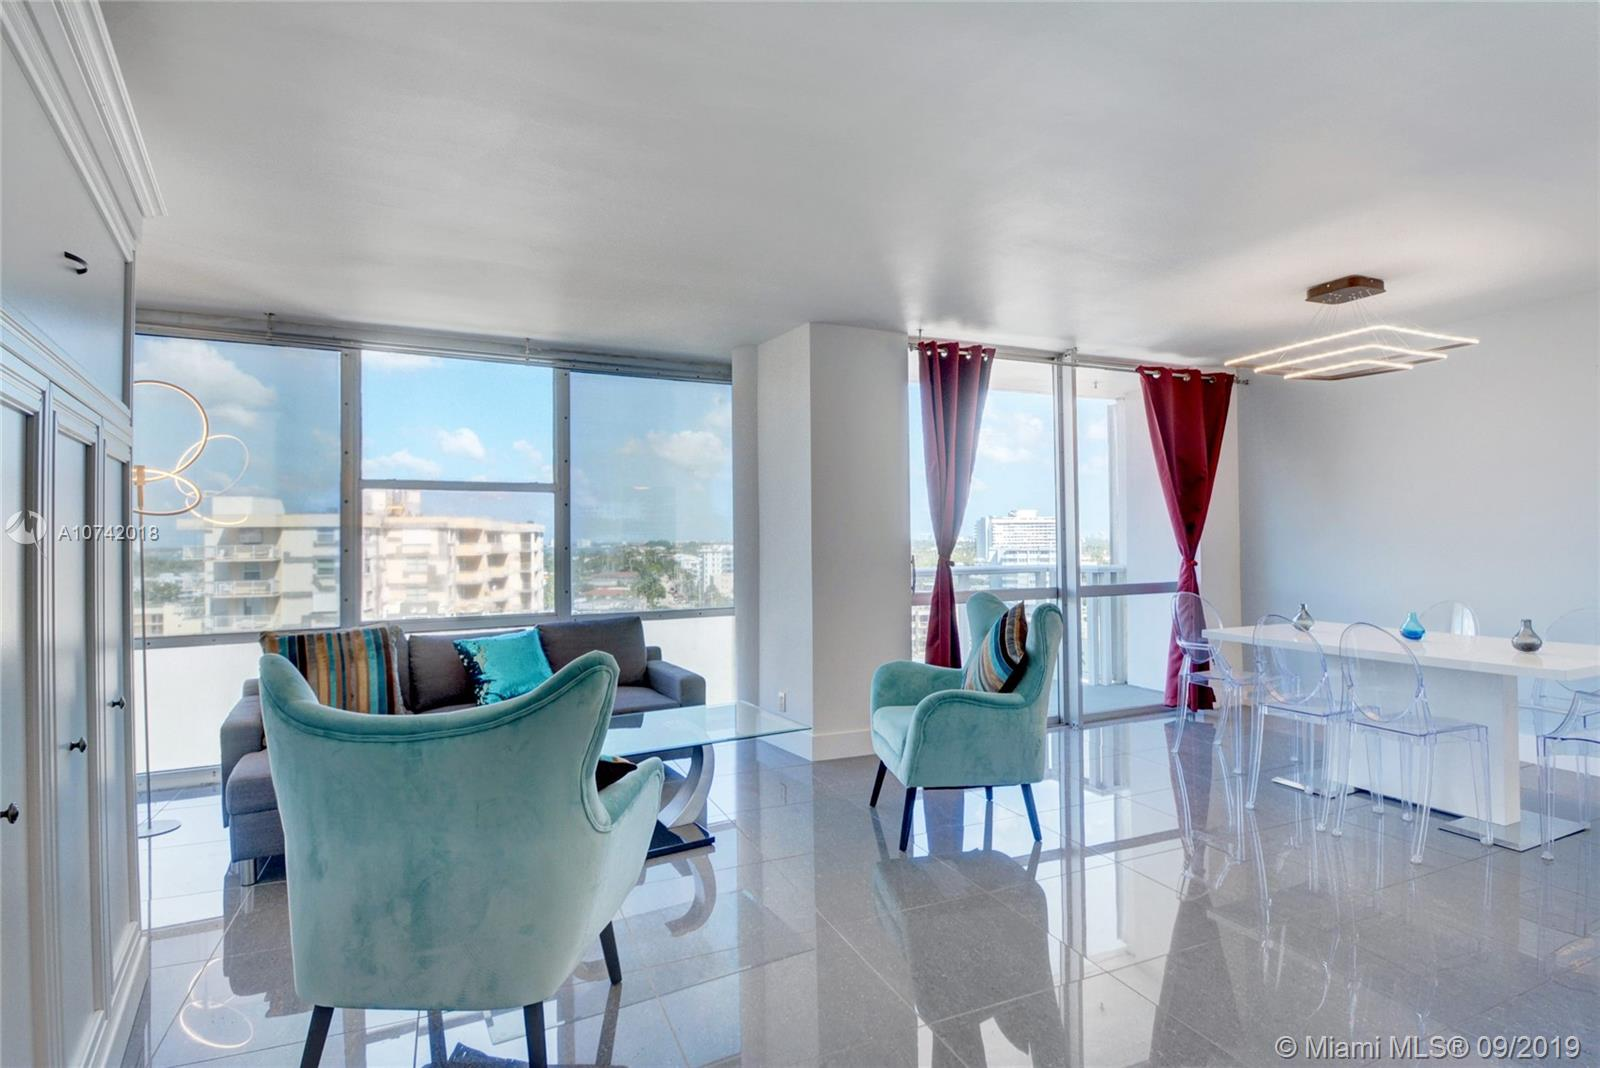 King Cole #1011 - 900 Bay Dr #1011, Miami Beach, FL 33141